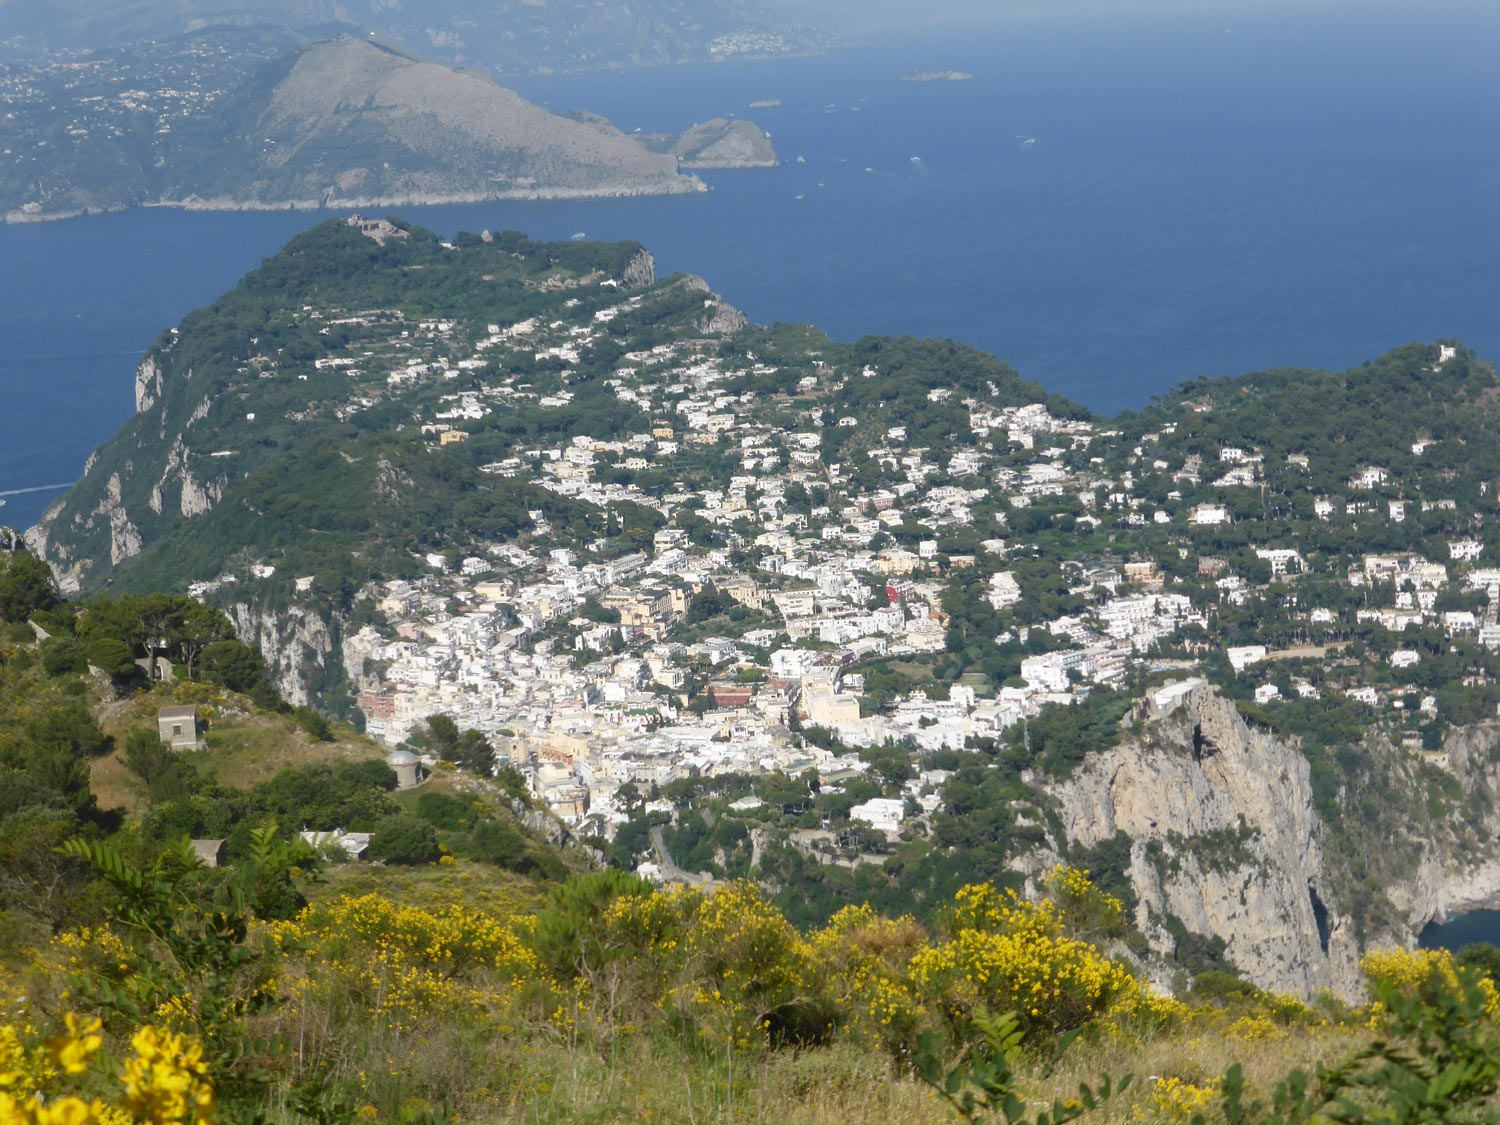 View from above Capri